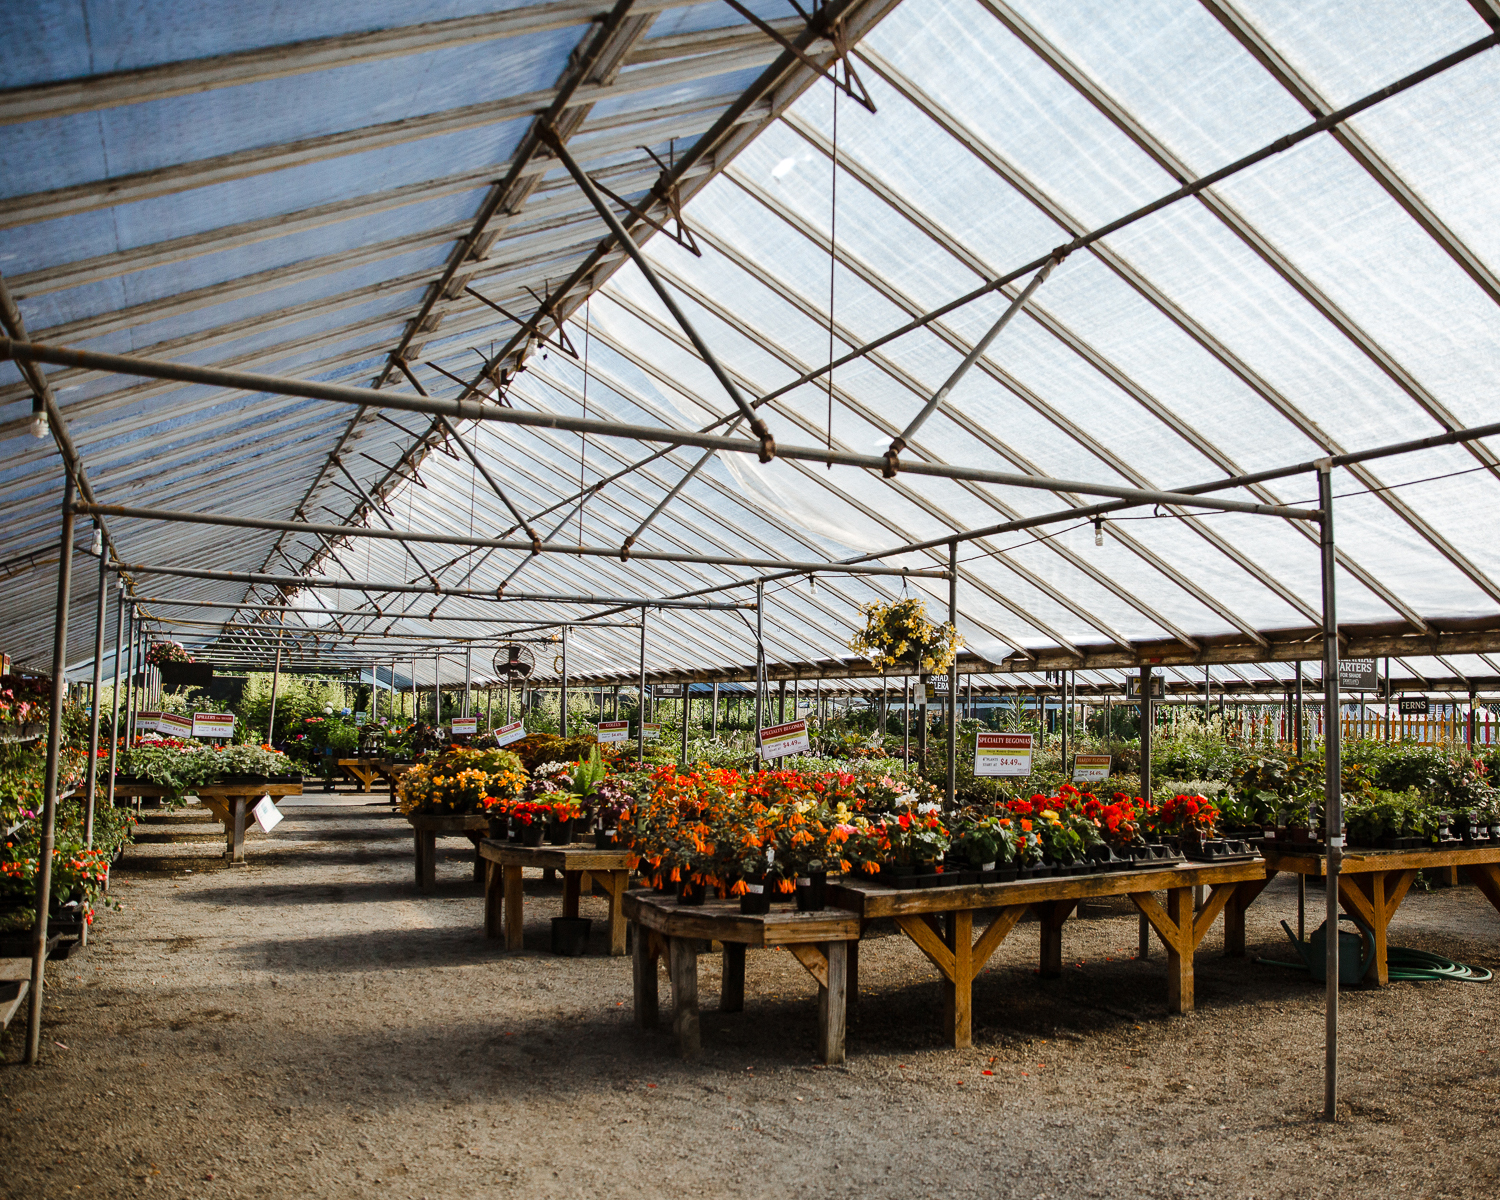 rows of potted flowers on tables in a greenhouse